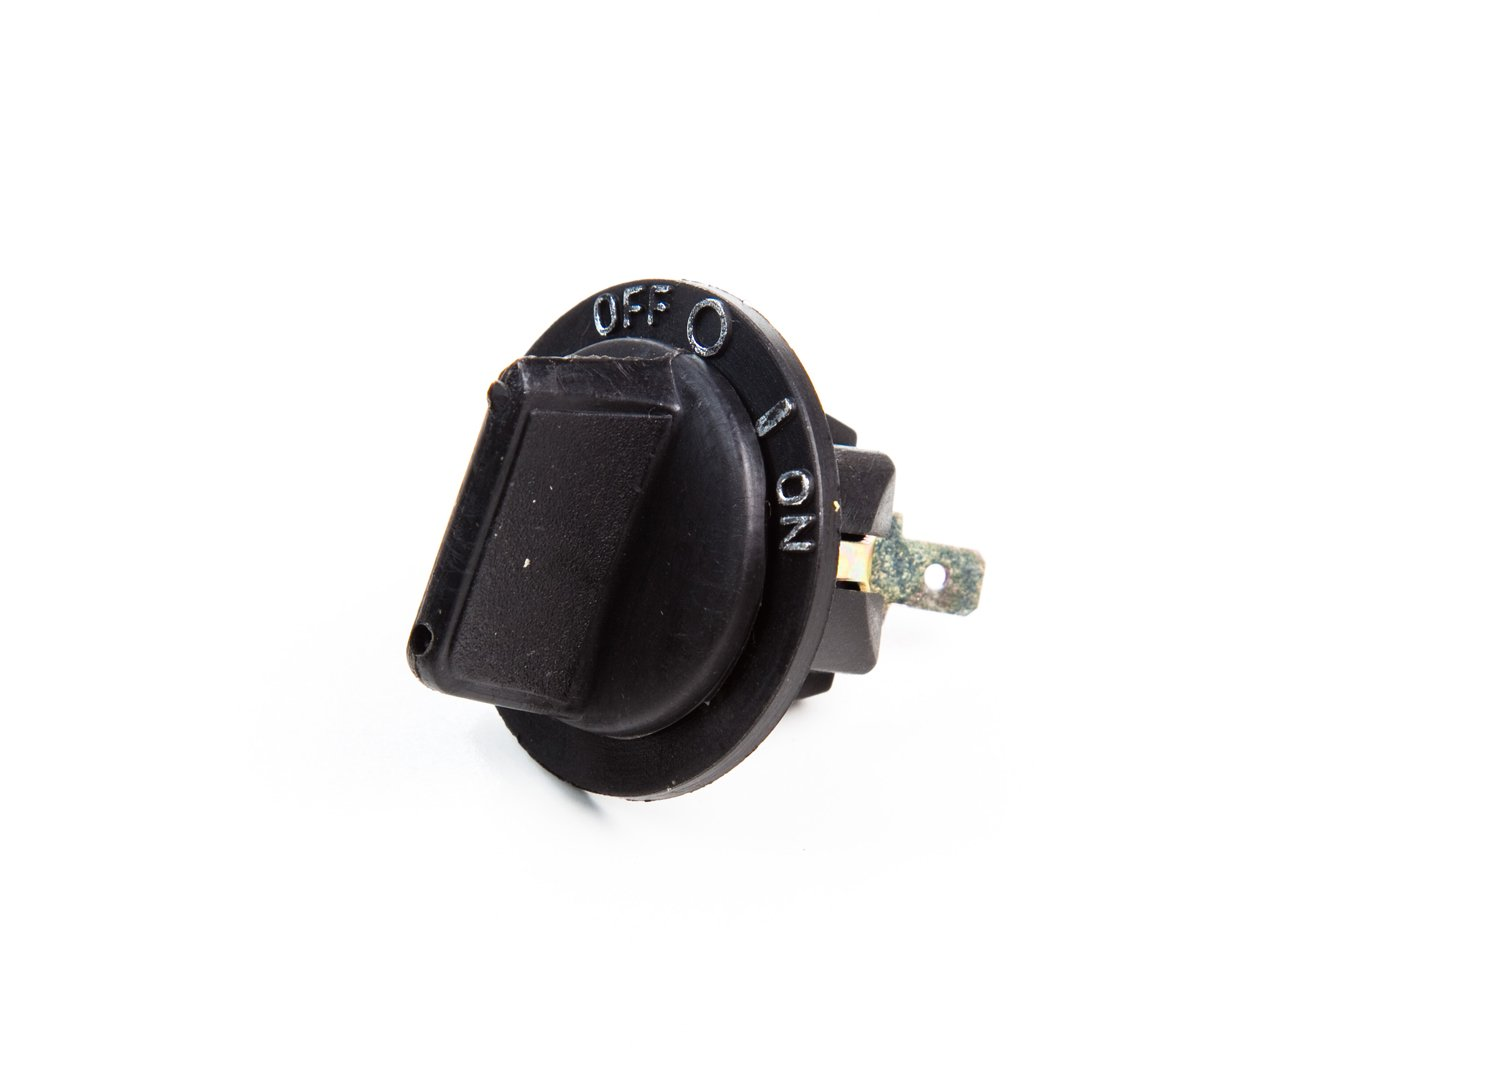 Briggs & Stratton 692309 Rotary Switch Replacement for Models 396691 and 692309 by Briggs & Stratton